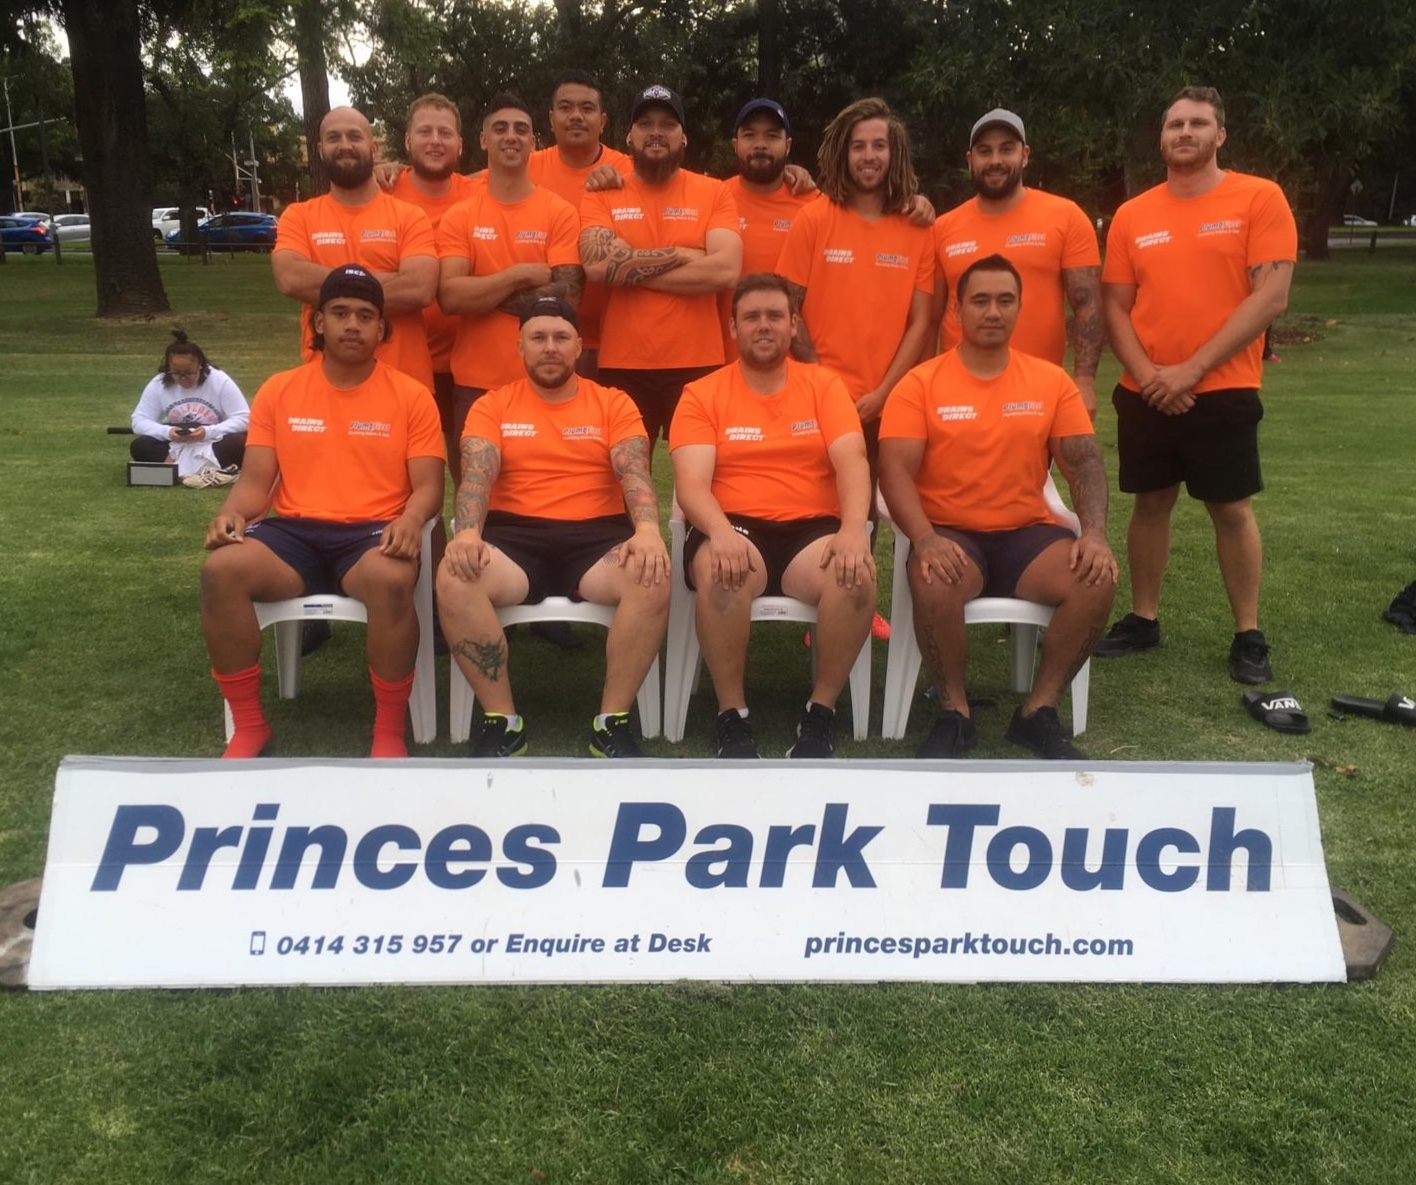 firstTouch - Men's B Grade premiers